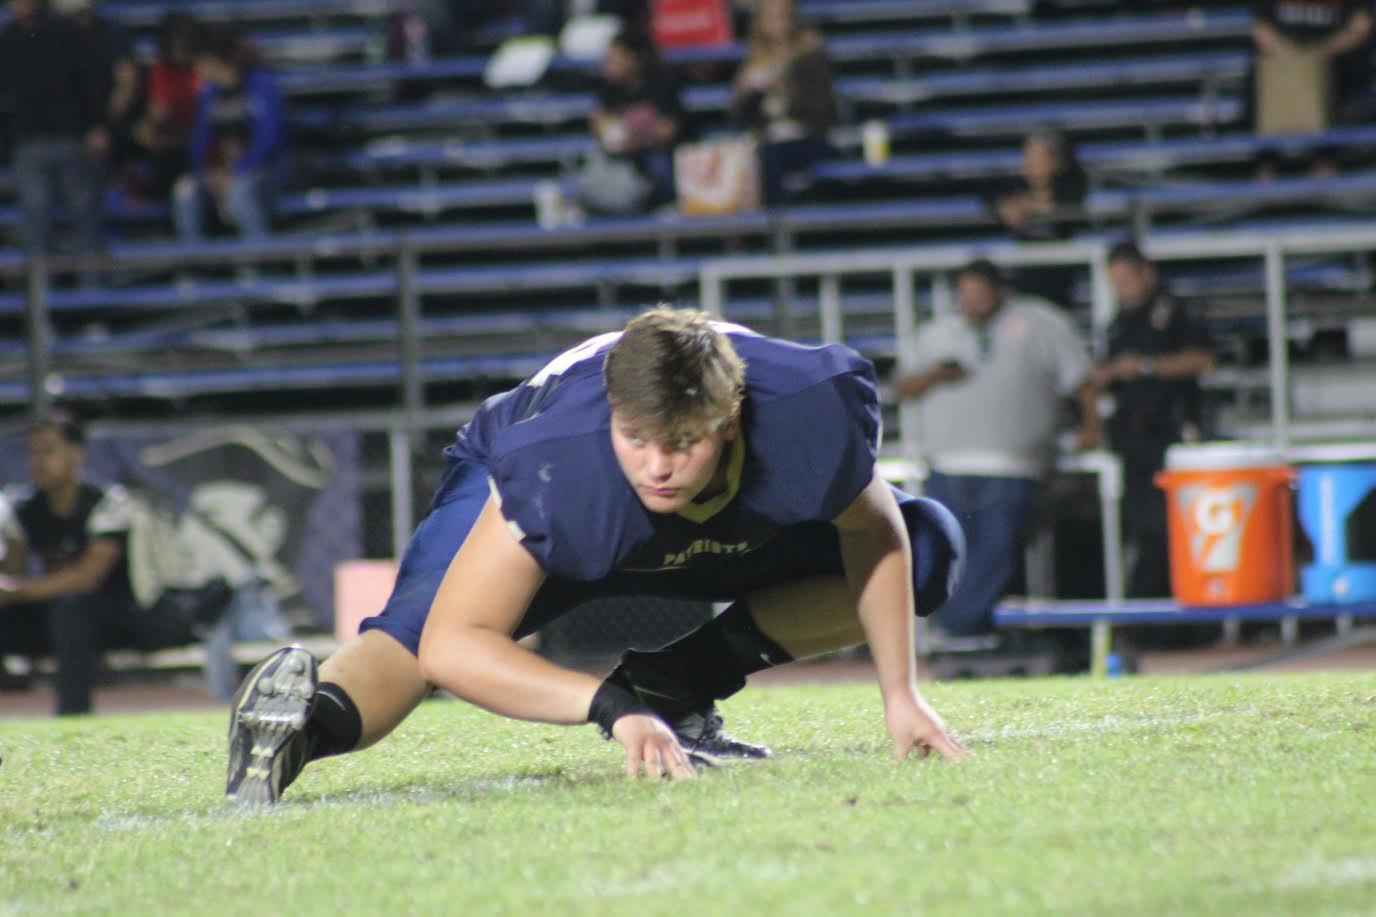 Varsity football player Kyle Matson warming up before last year's homecoming game.